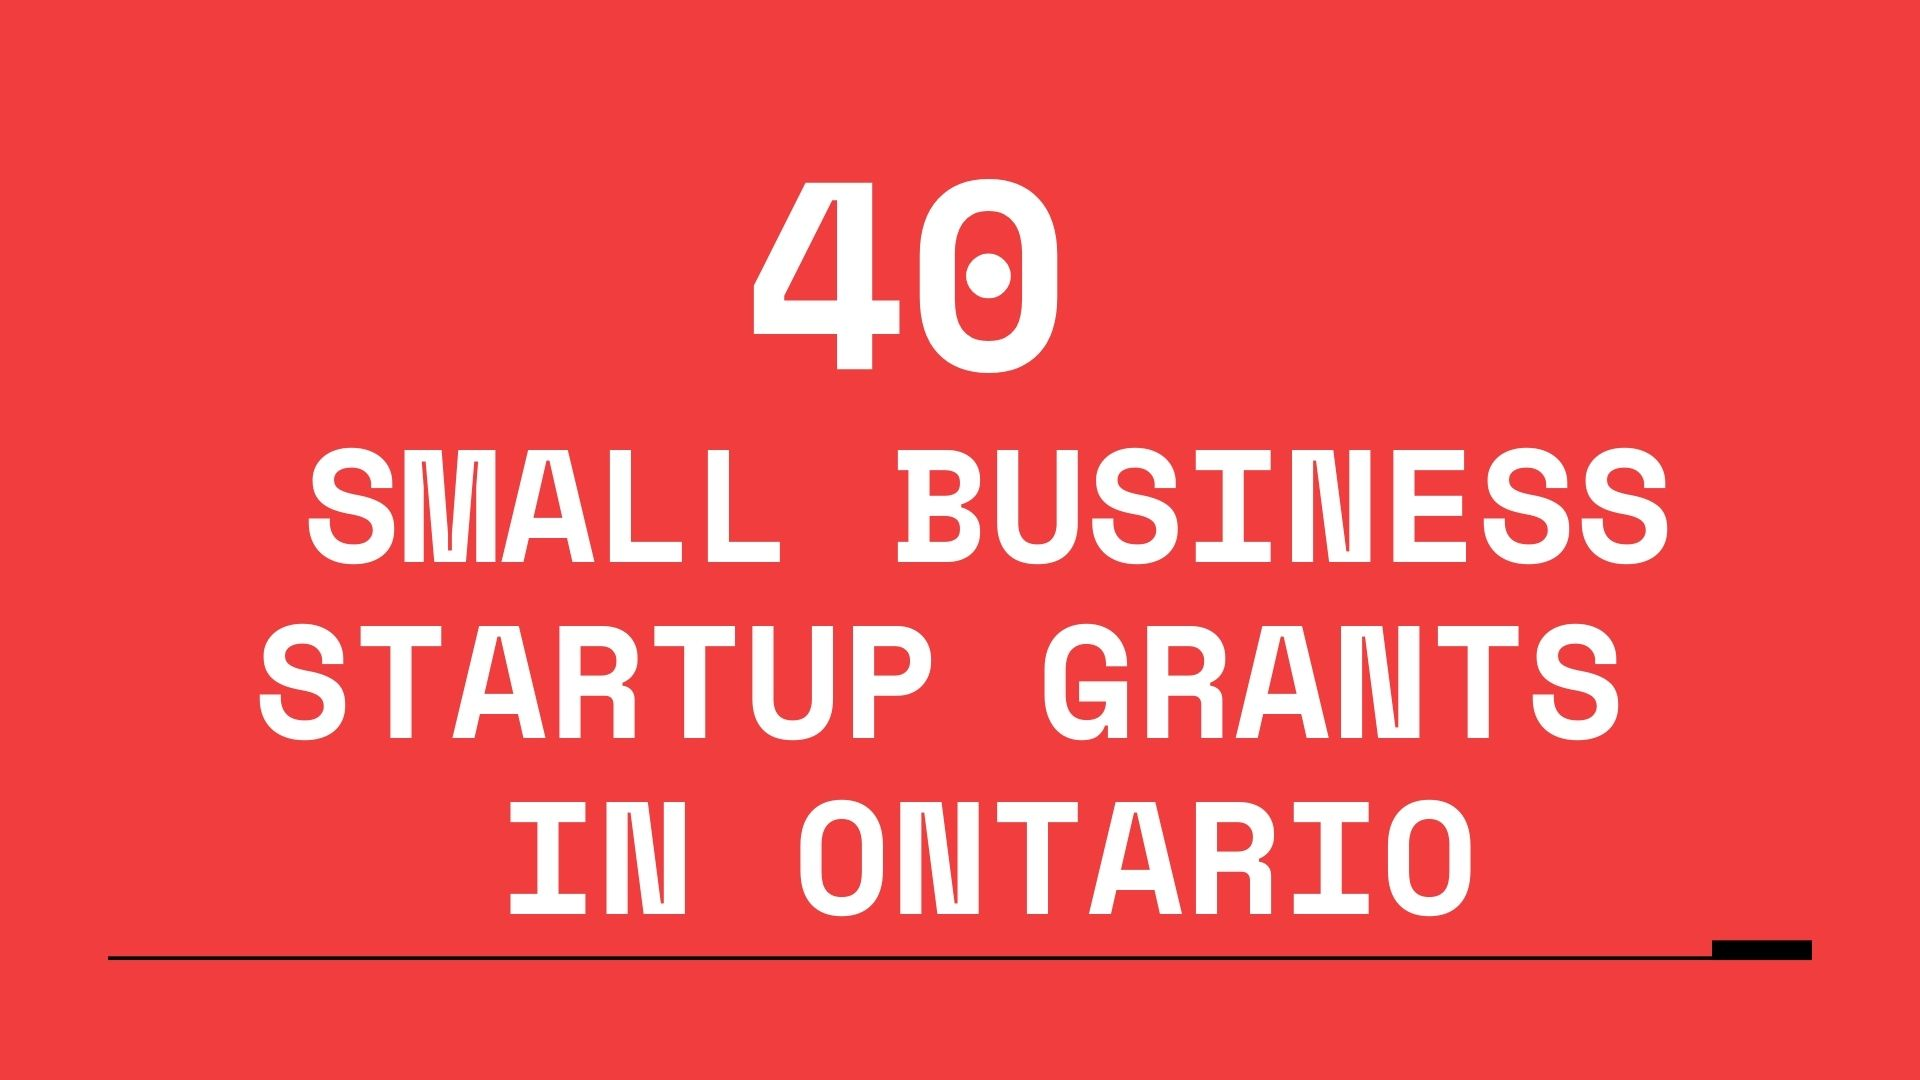 40 Small Business Startup Grants in Ontario